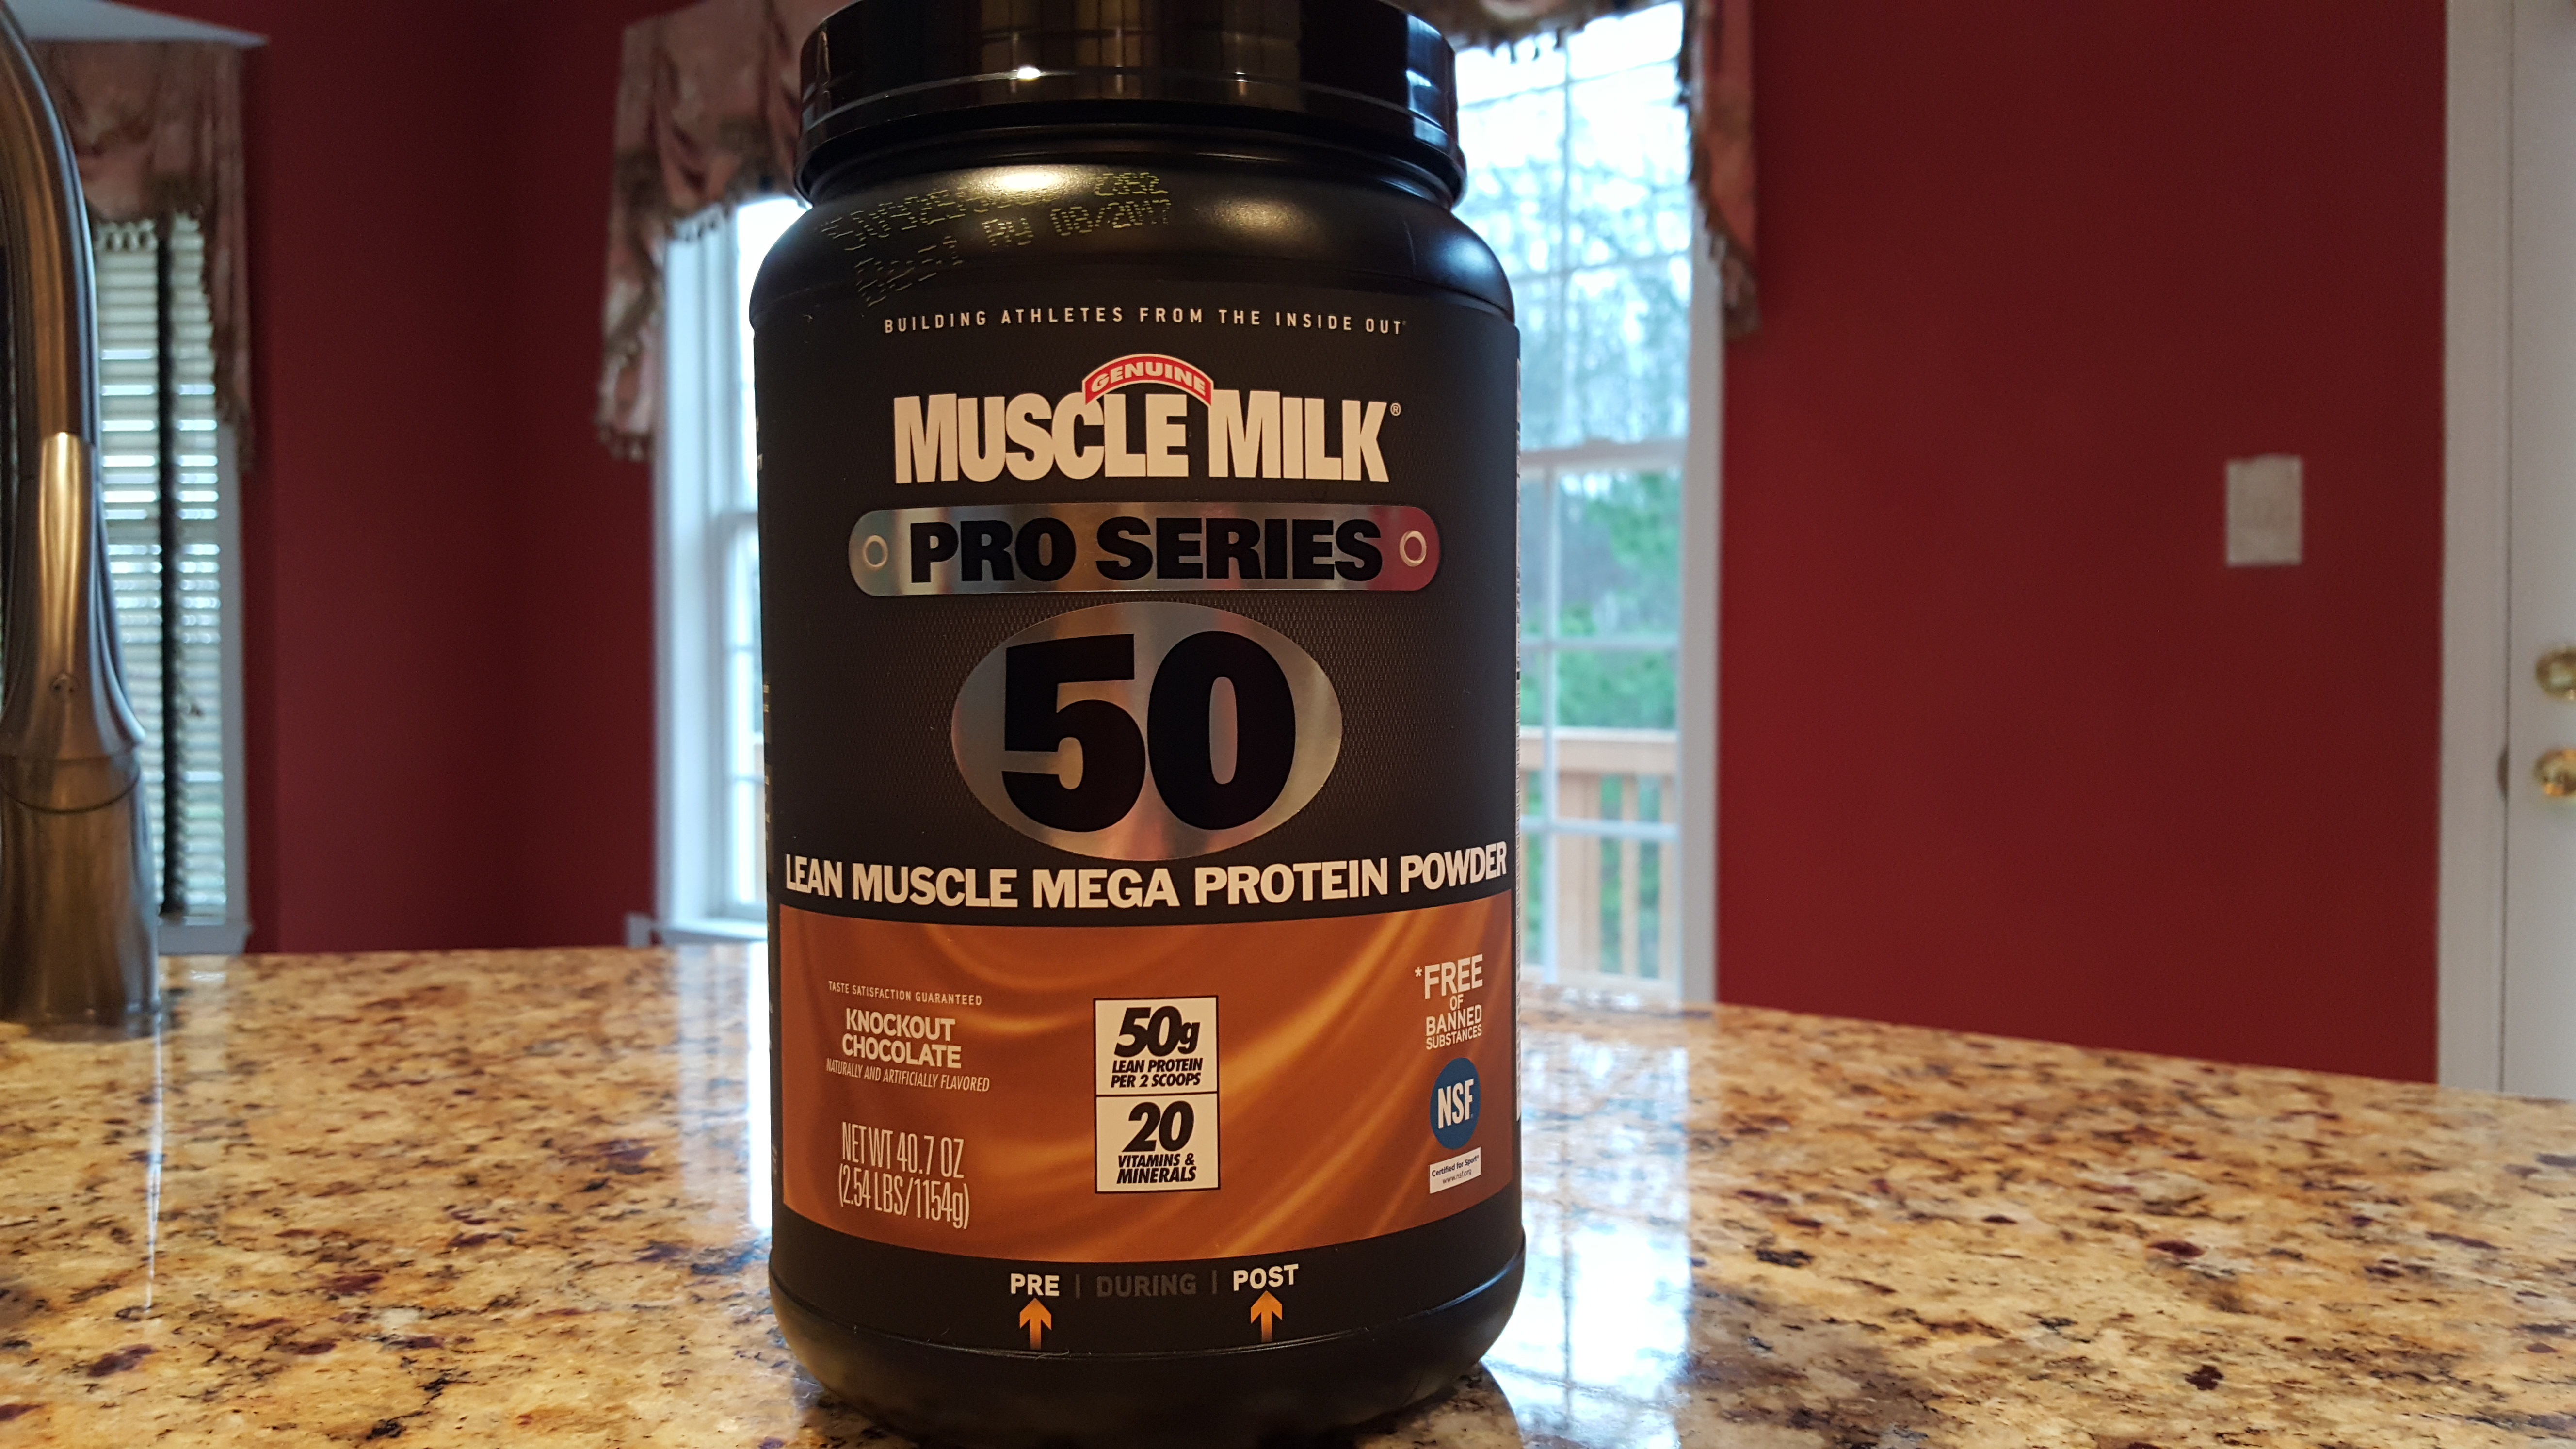 muscle-milk-pro-50-series-review-compare-muscle-milk